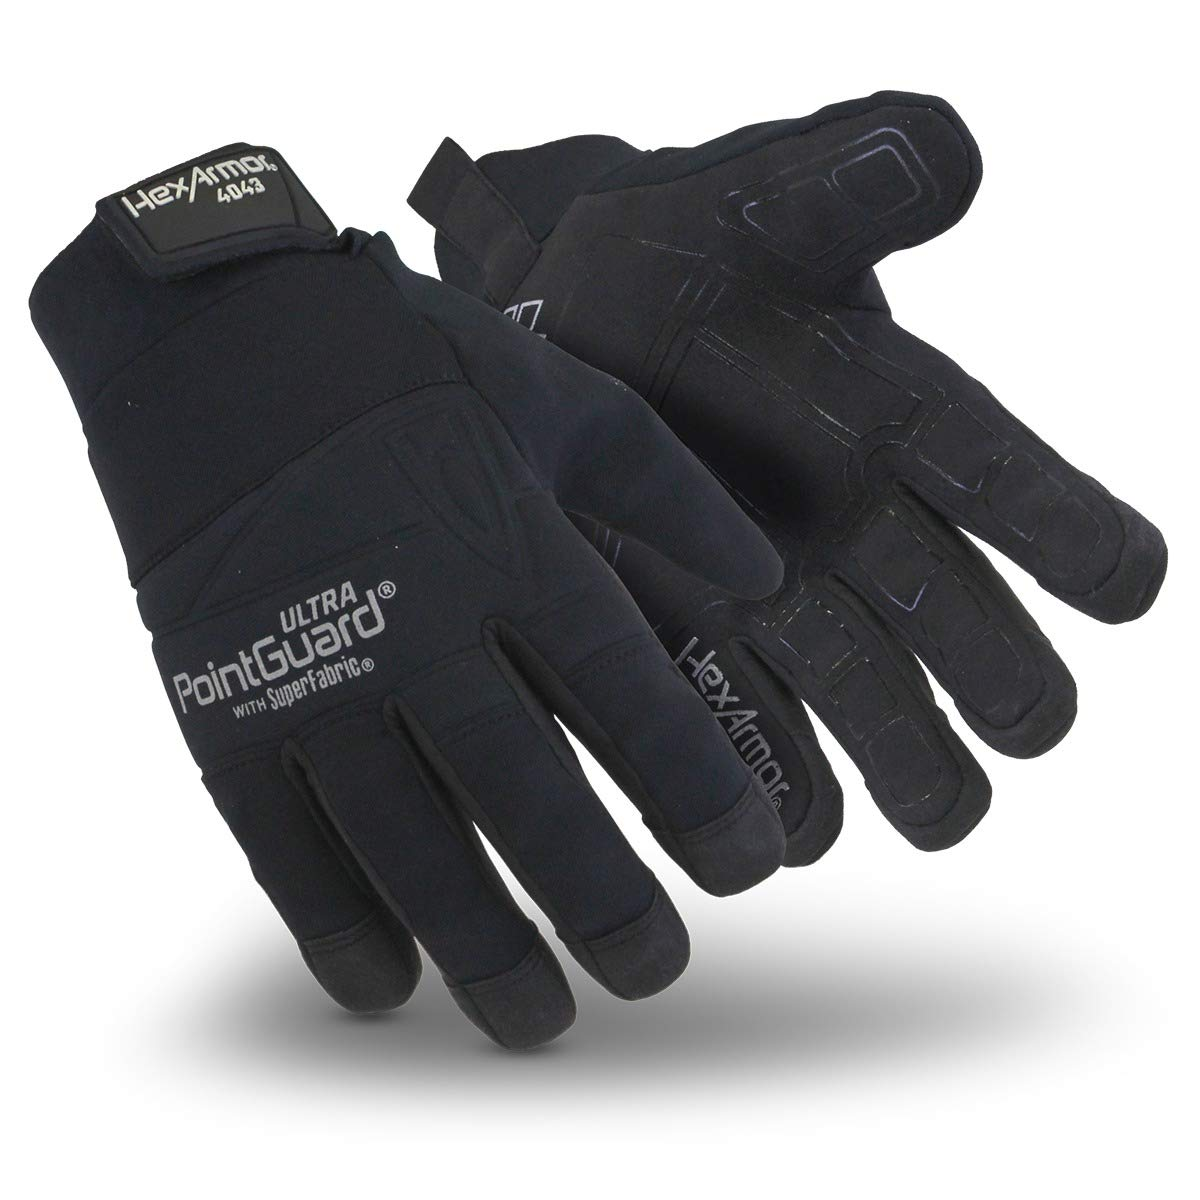 HexArmor PointGuard Ultra 4043 Black Needle Resistant Search Gloves for Police and Law Enforcement, Small